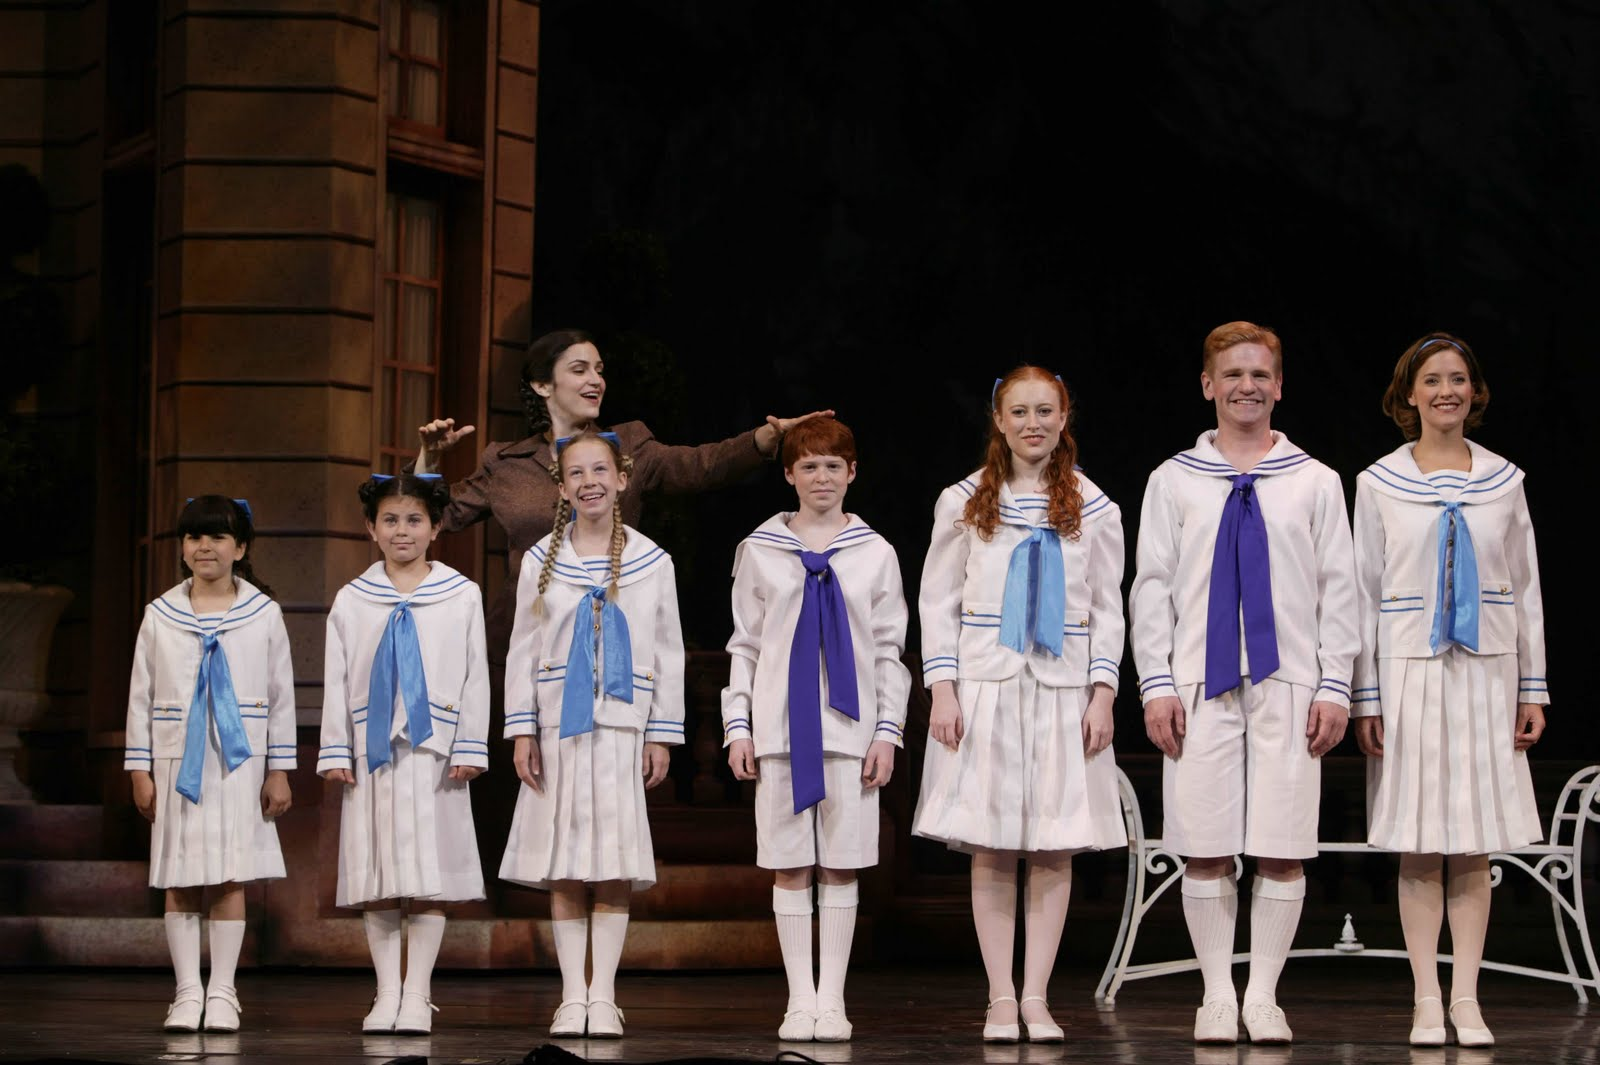 the sound of music Computer Wallpapers Desktop Backgrounds 1600x1065